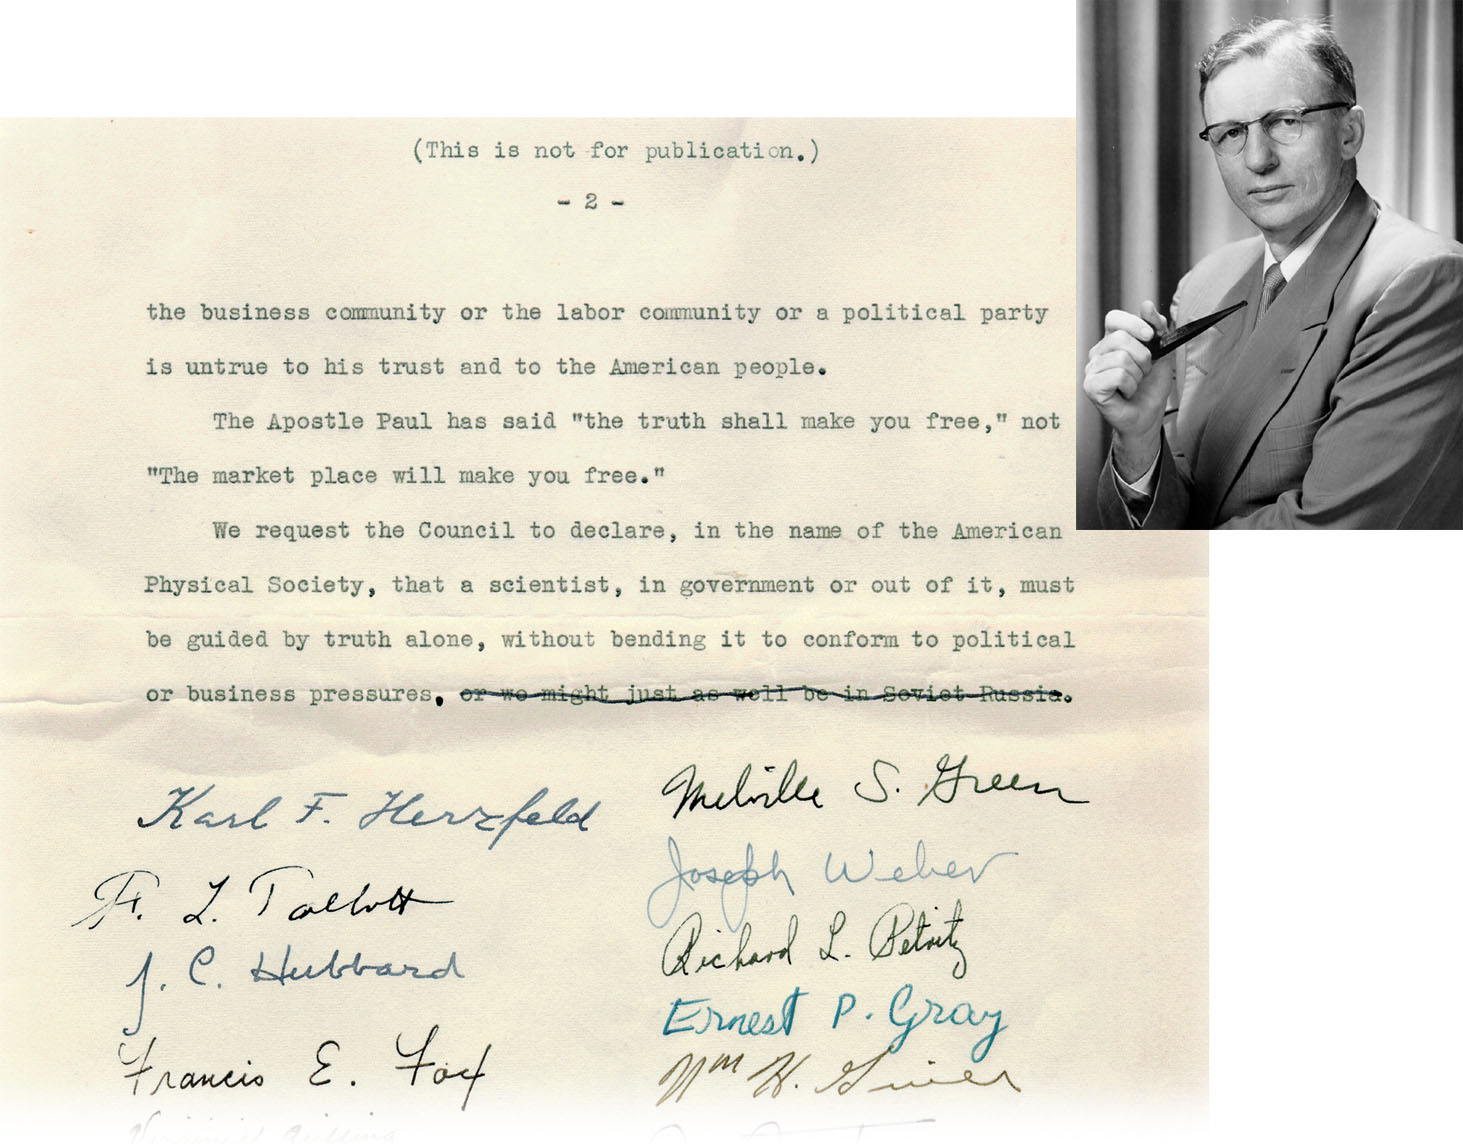 Petition submitted by Washington D.C. area APS members in April 1953 in support of Astin (detail).